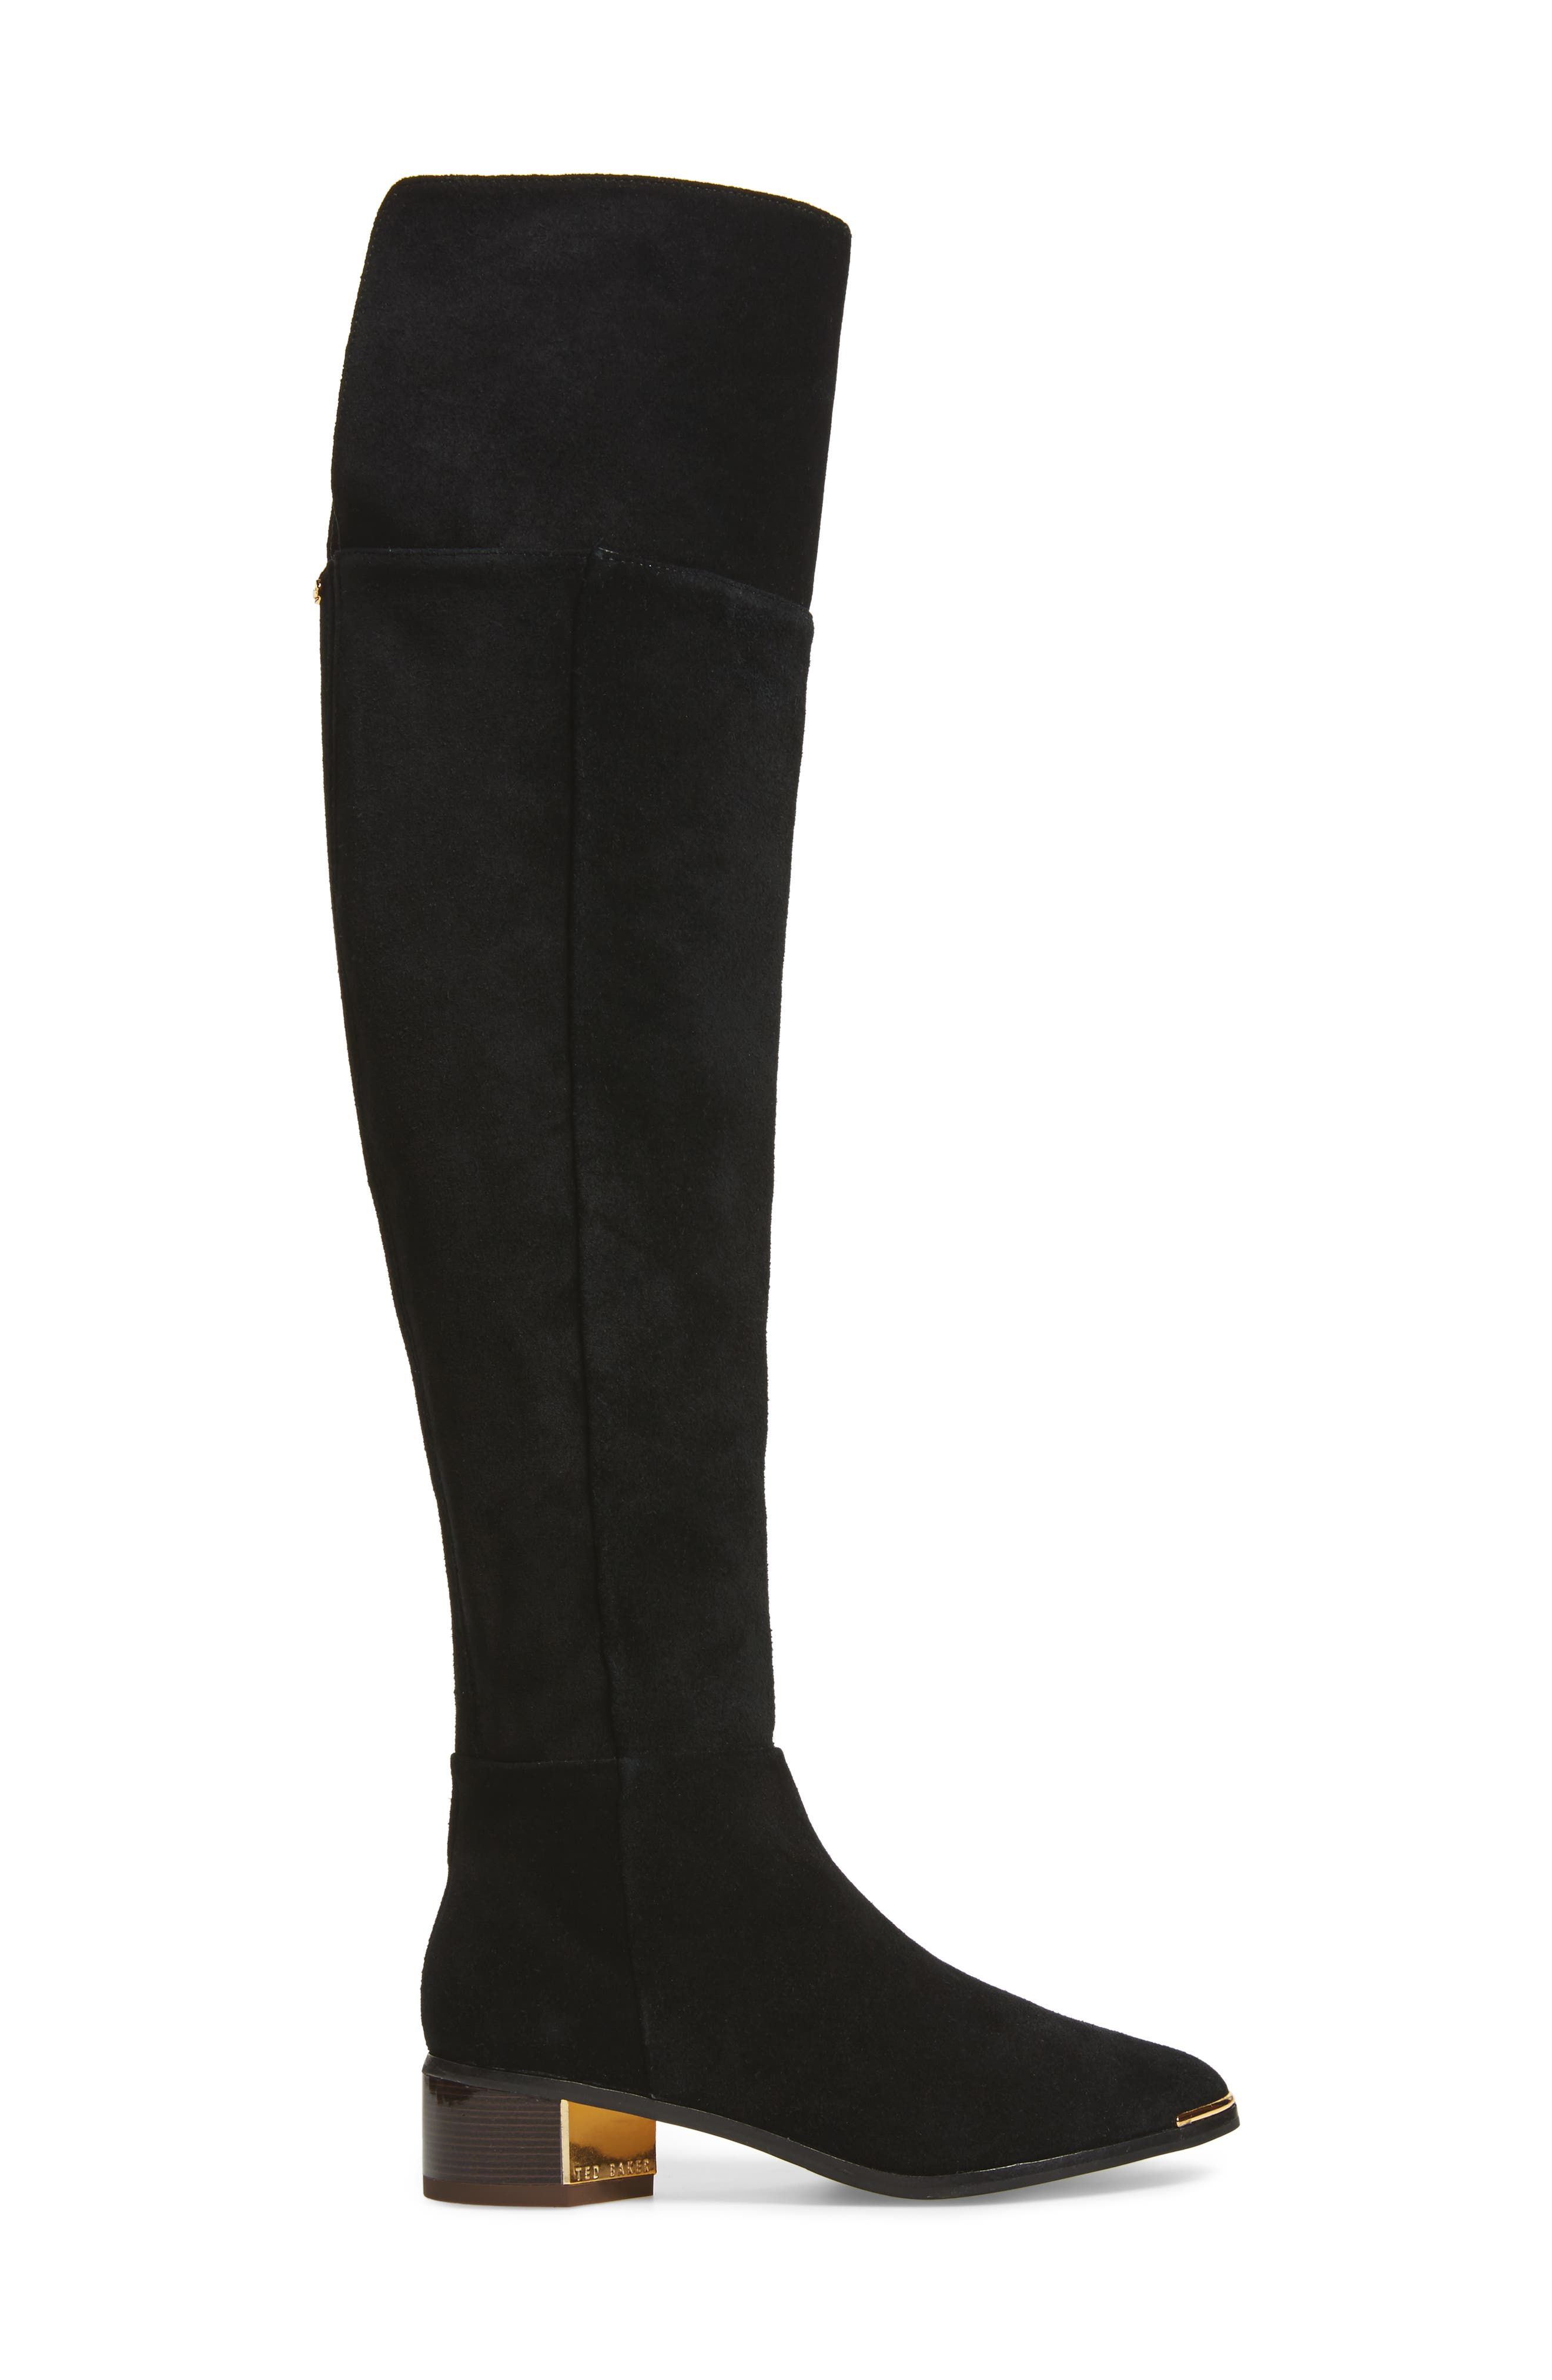 Nayomie Over the Knee Boot,                             Alternate thumbnail 3, color,                             Black Suede